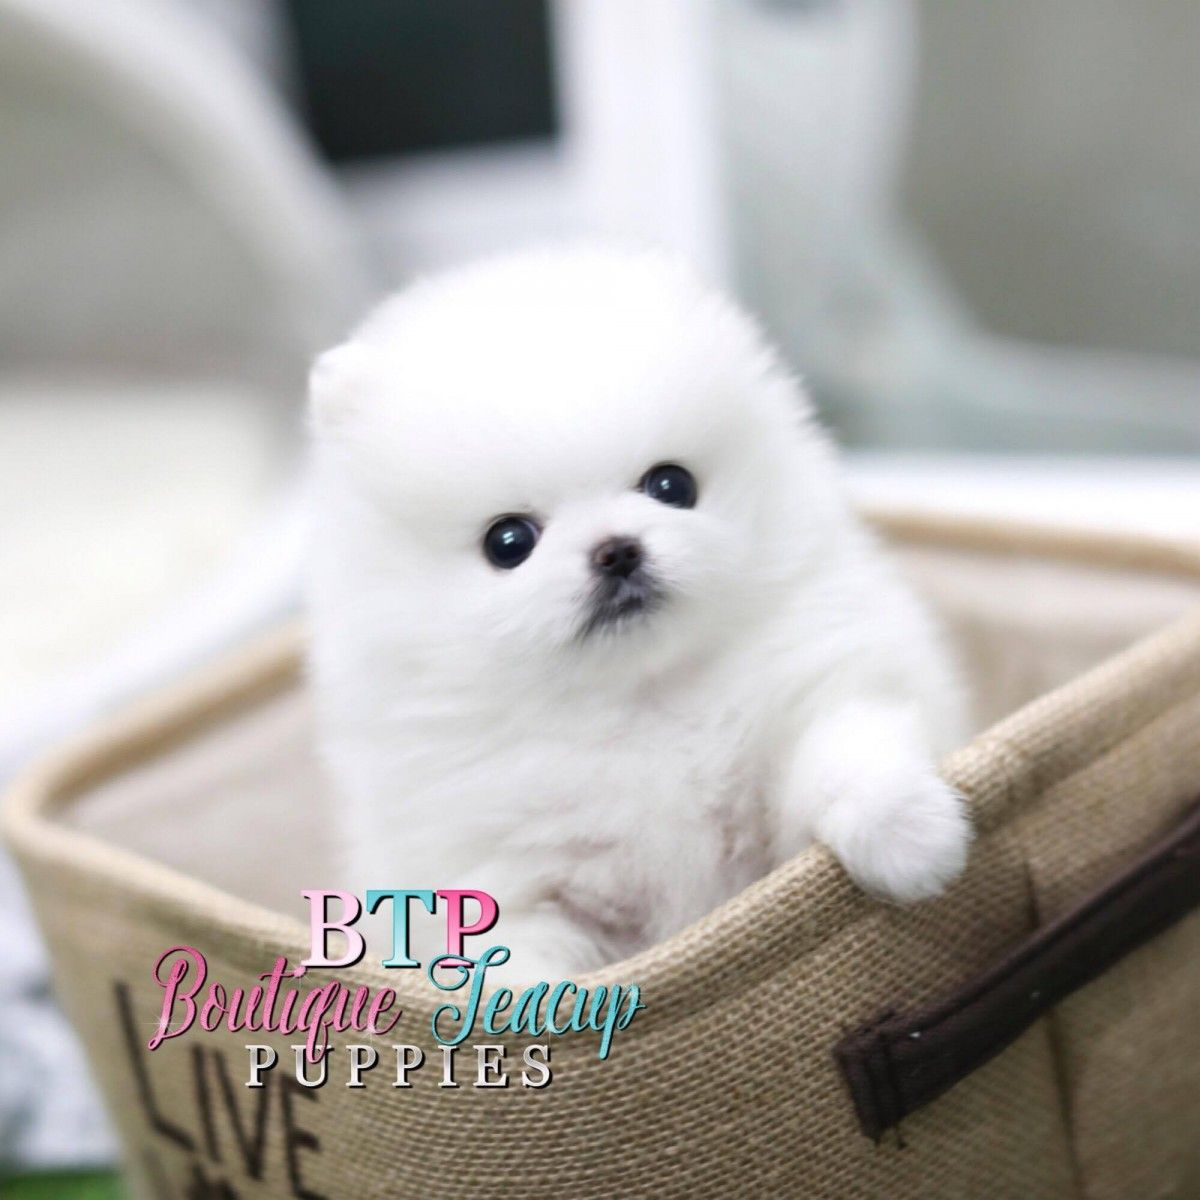 Pocket Puppies & Cute Teacup Dogs For Sale  Welcome to the Home of Boutique Teacup Puppies    Our Promise to you:    	Luxury Quality Puppies with a History of Excellent Health  	Vet Check on all of our puppies prior to leaving our breeders care